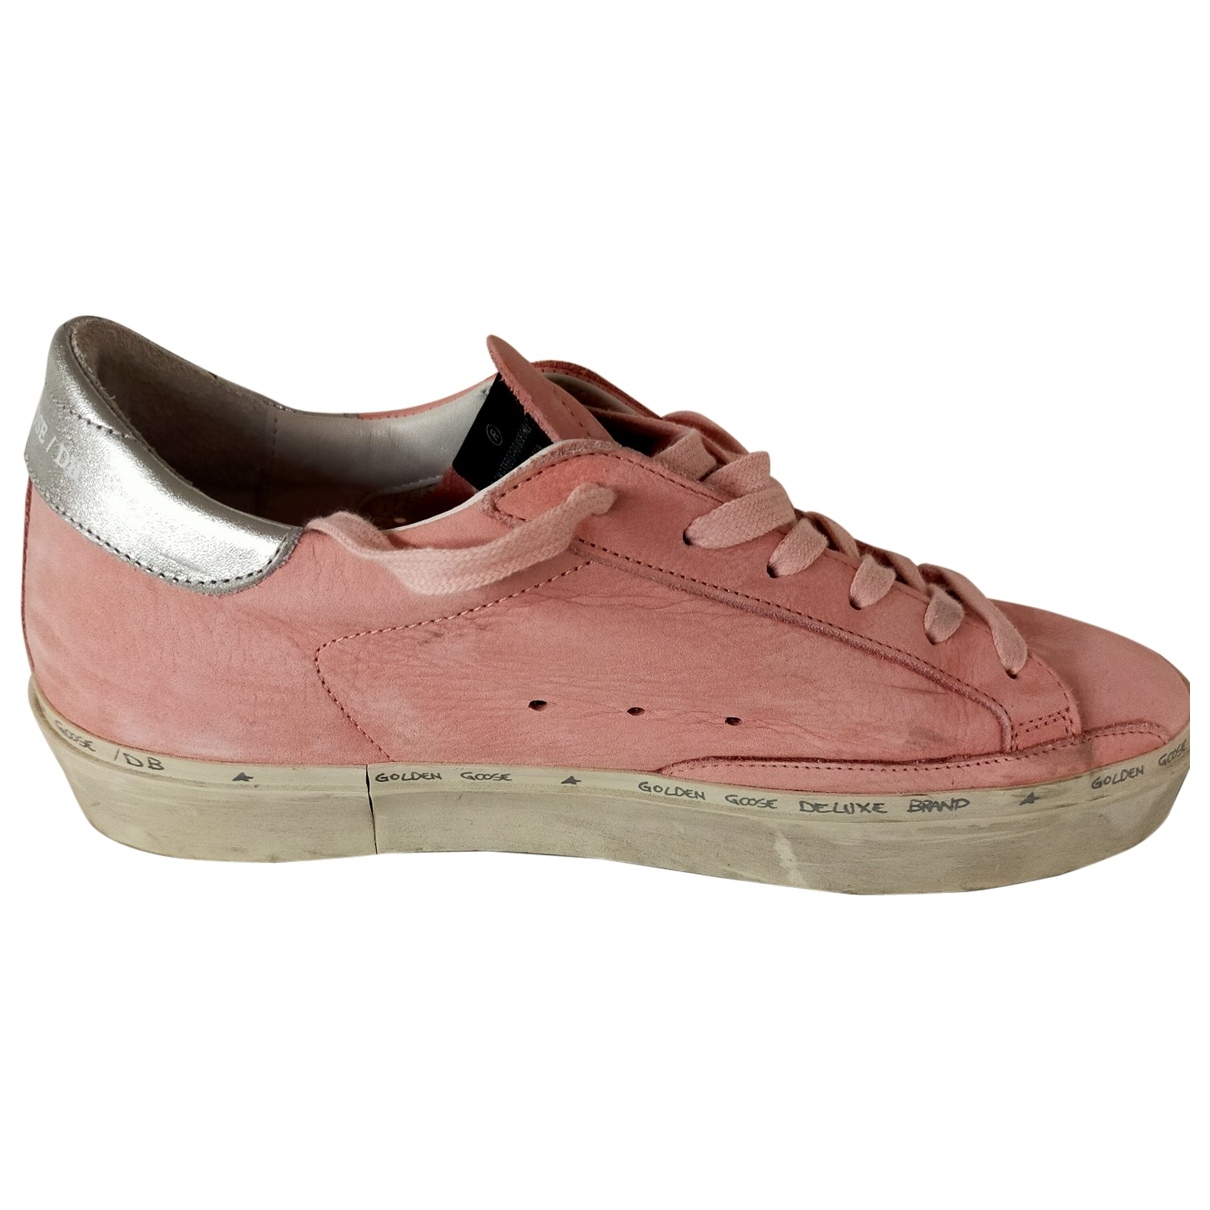 Golden Goose Hi Star Pink Leather Trainers for Women 39 EU